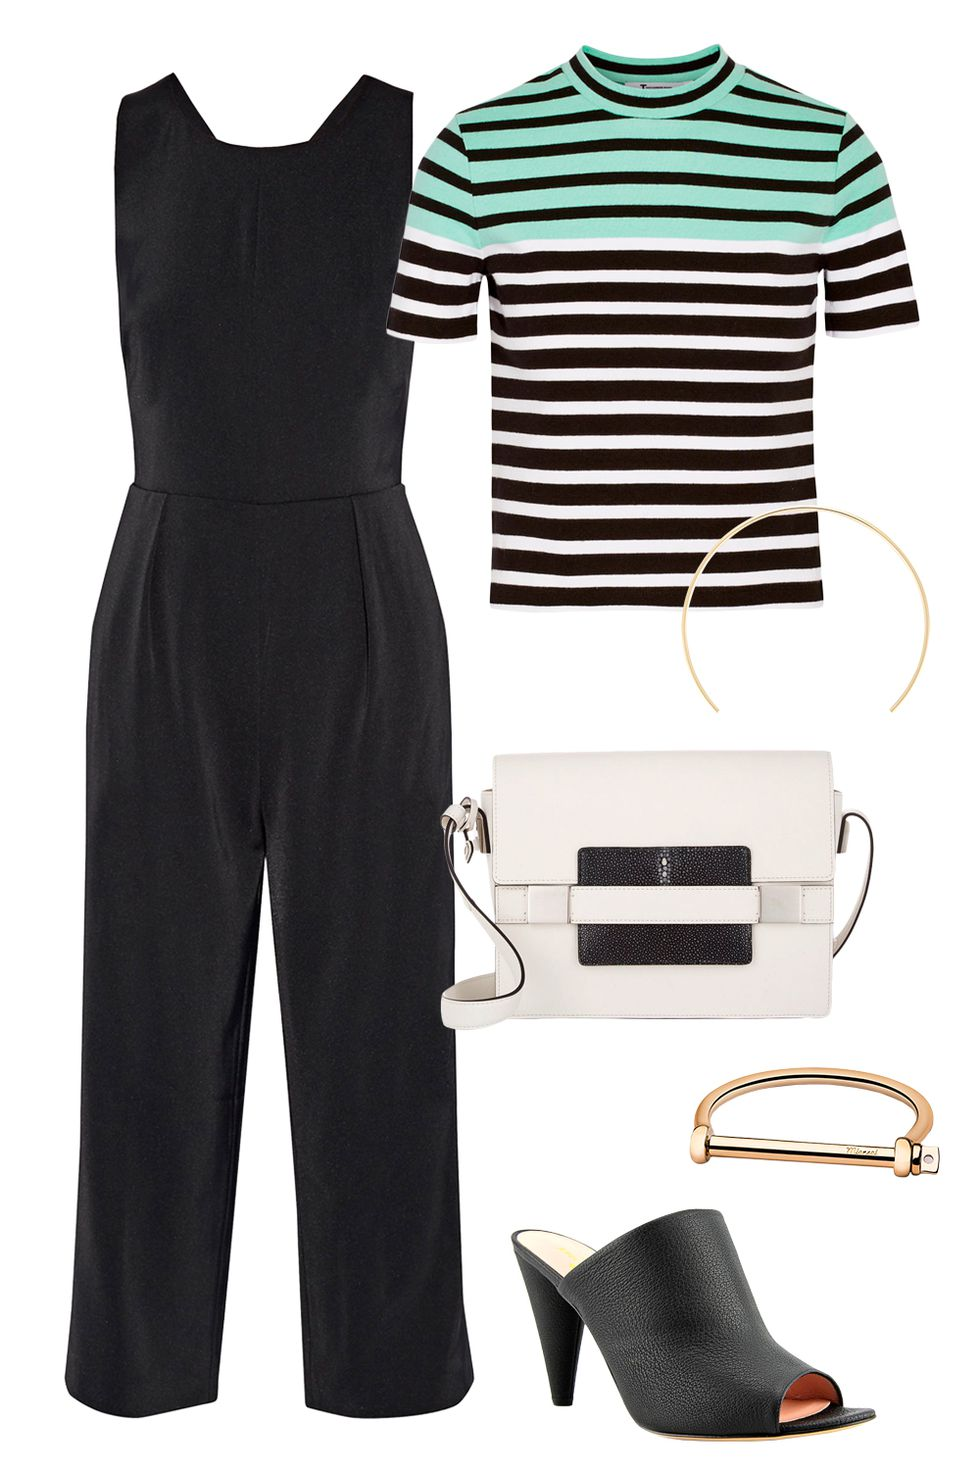 how-to-style-black-jumpsuit-layer-green-light-tee-stripe-white-bag-black-shoe-sandalh-fall-winter-fashion-work.jpg